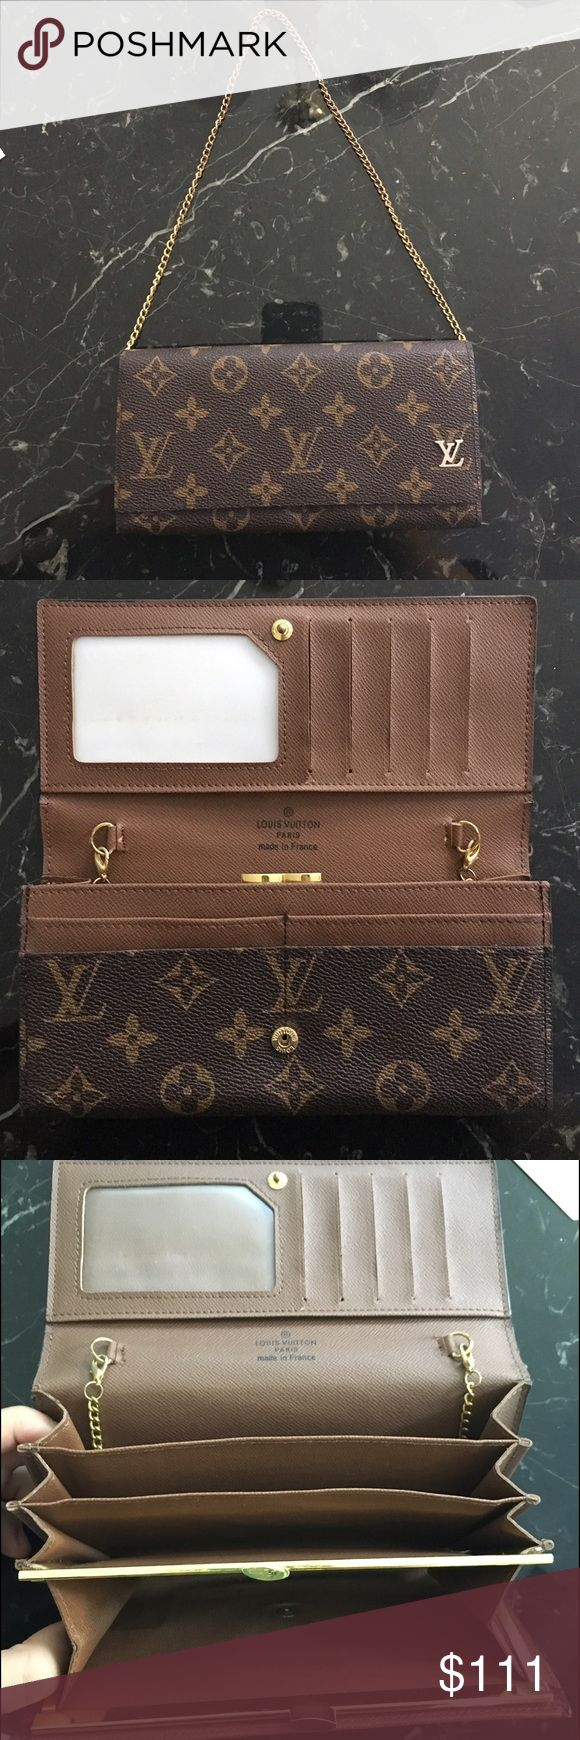 Louis Vuitton wallet with handle I received this as a gift about 5-6 years ago, so auth is unknown. The metal is slightly worn and the edges are slightly chipped, but it's still in good condition!! Also, note how the ID holder has some slight discoloration to it. Please let me know if you have any questions!! Louis Vuitton Bags Wallets